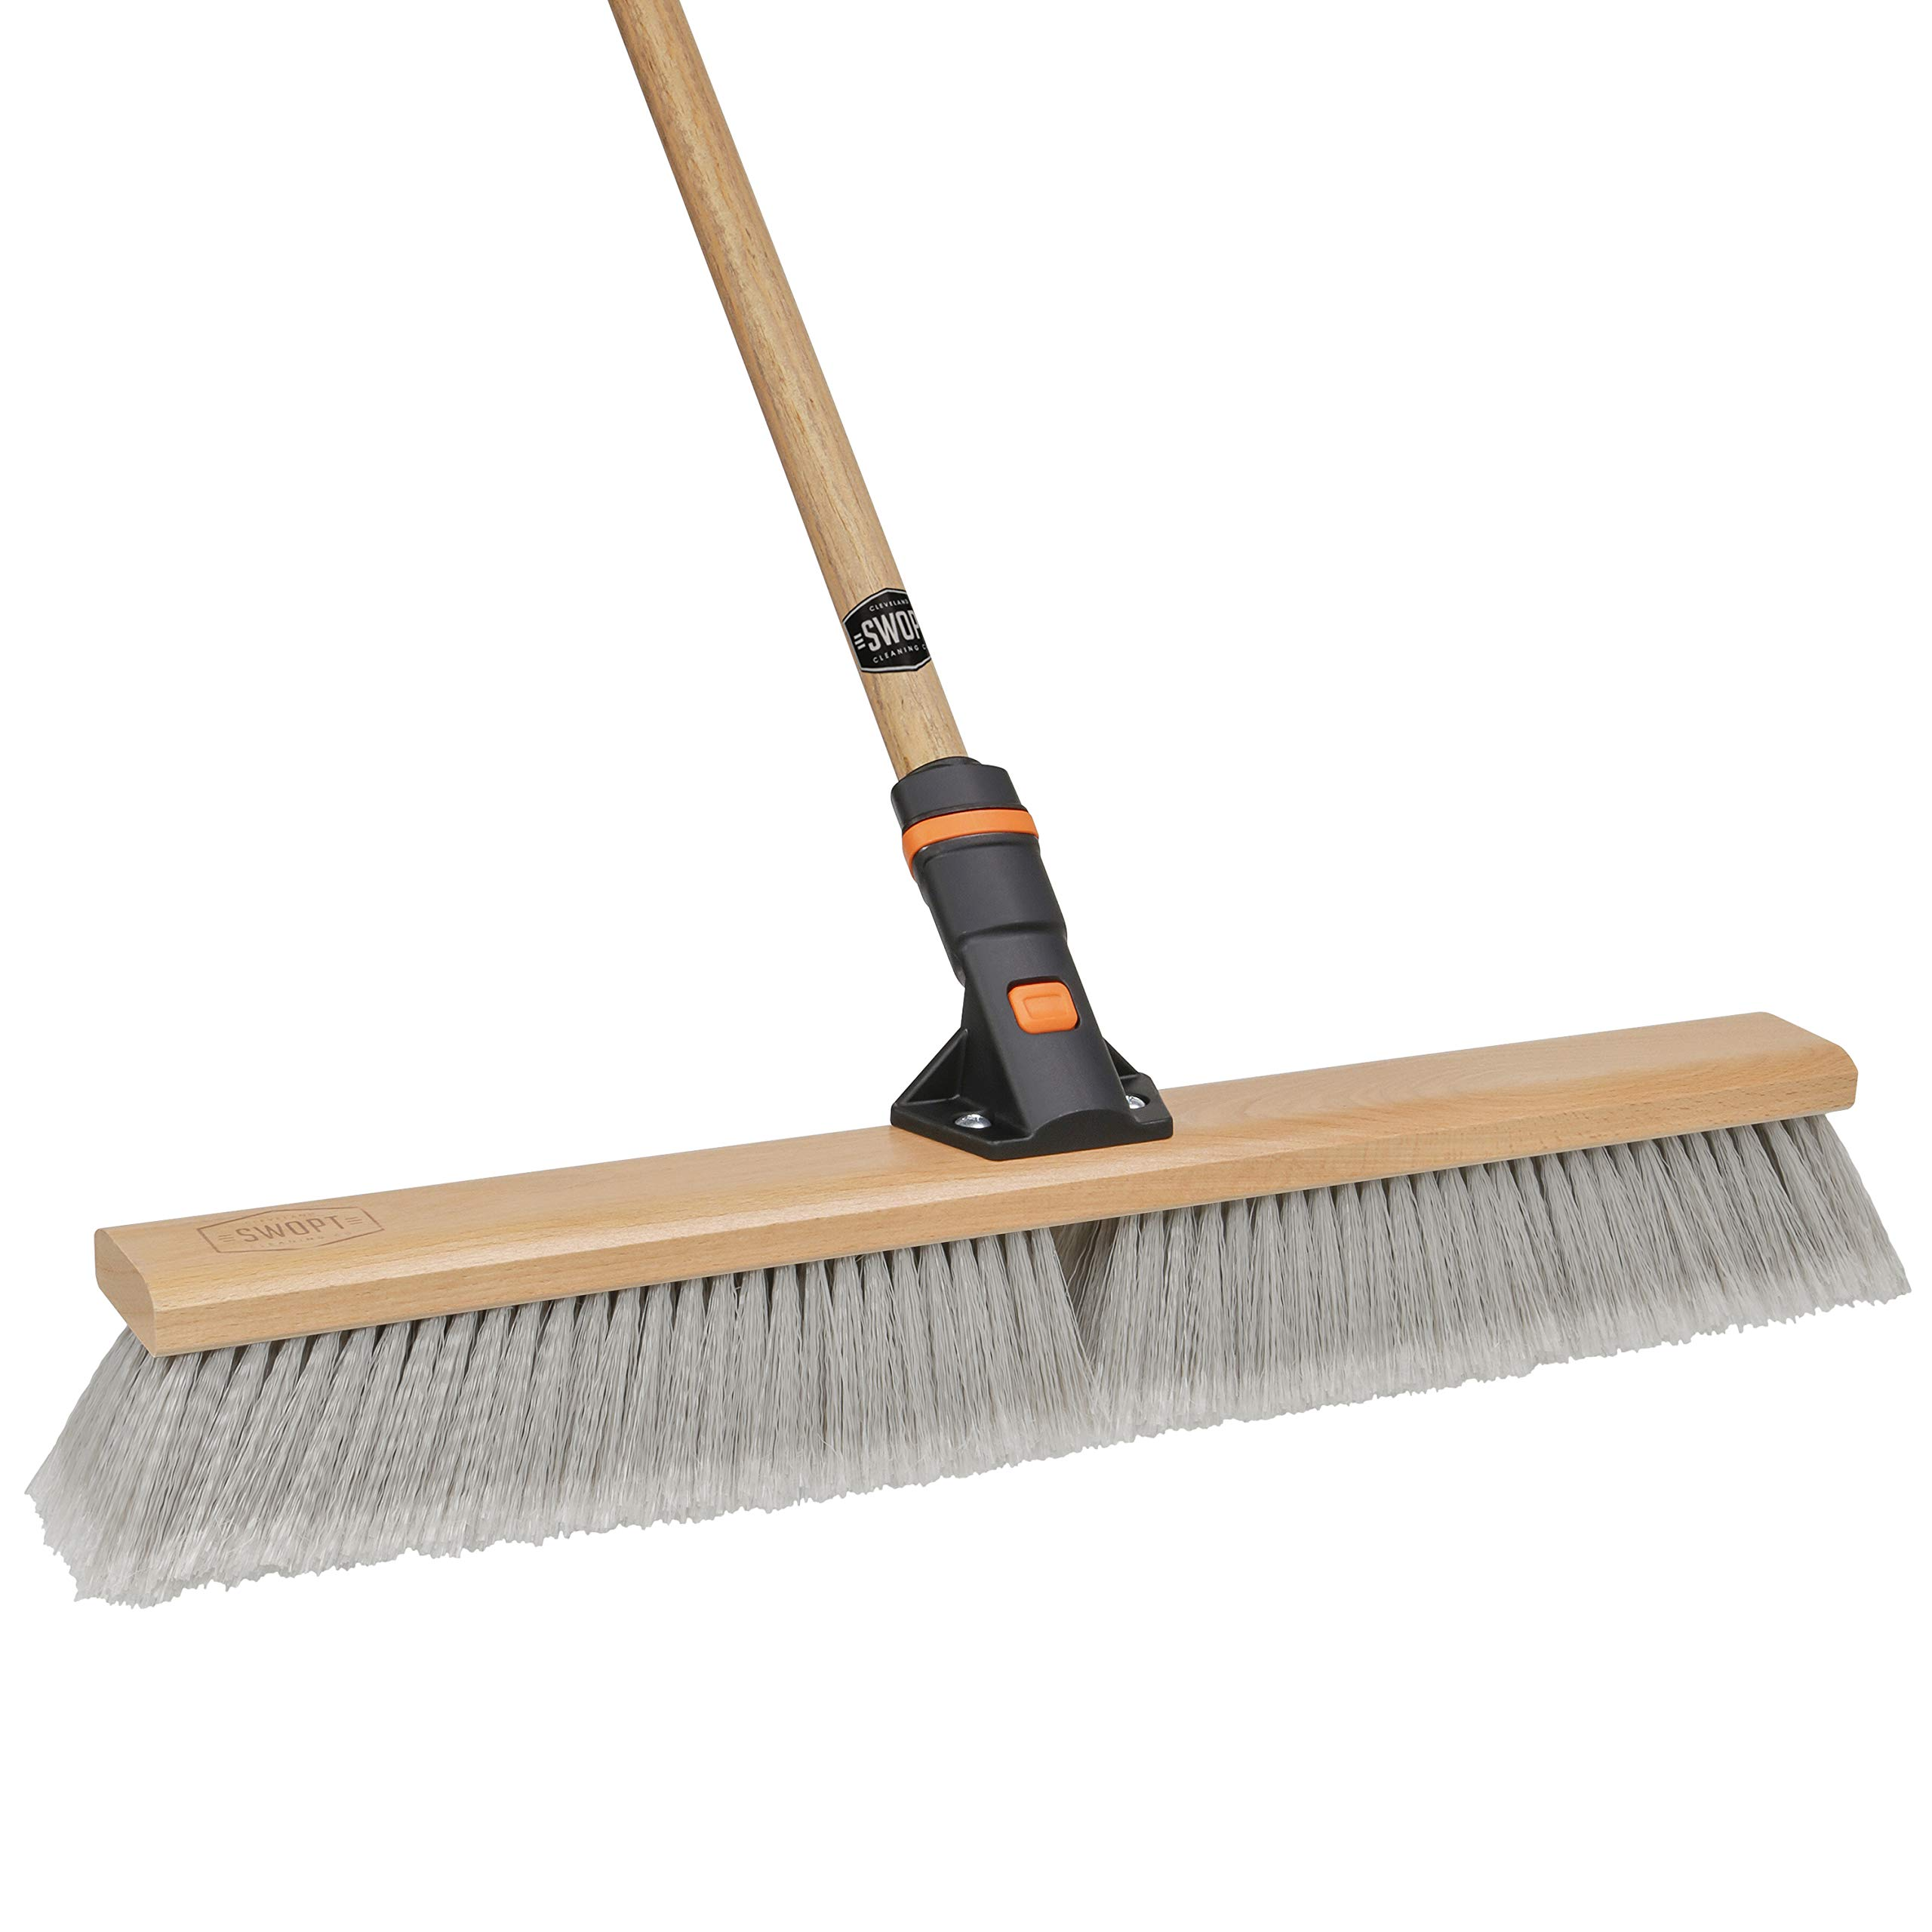 24'' SWOPT Premium Push Broom for Smooth Surfaces - 60'' Comfort Grip Wooden Handle - EVA Foam Comfort Grip - Handle Interchangeable with Other SWOPT Products - Stay Organized & Efficient by Swopt